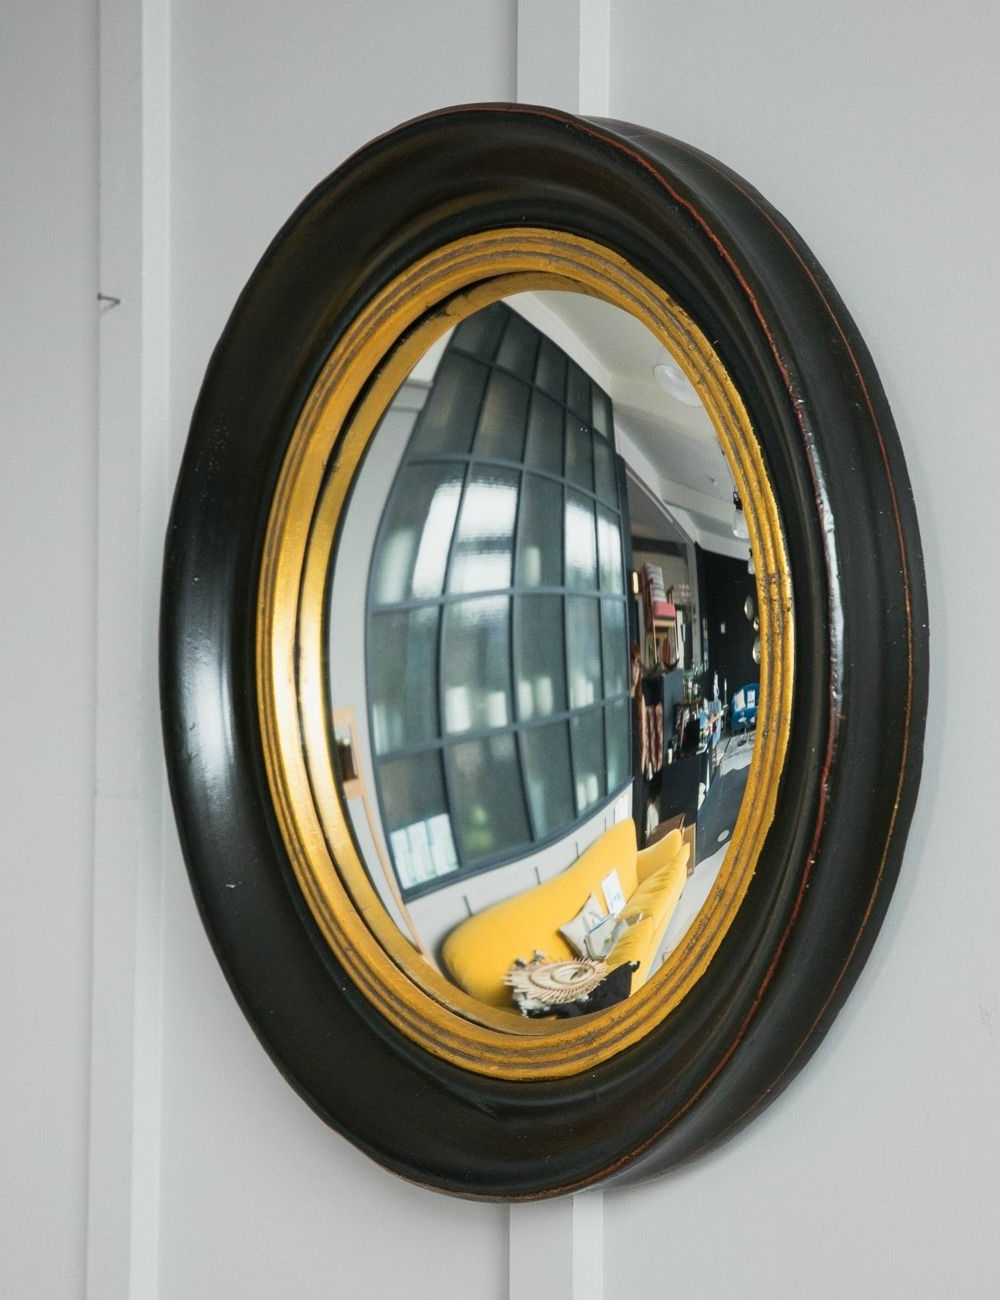 2019 Fish Eye Convex Mirror Intended For Round Convex Wall Mirrors (View 1 of 20)